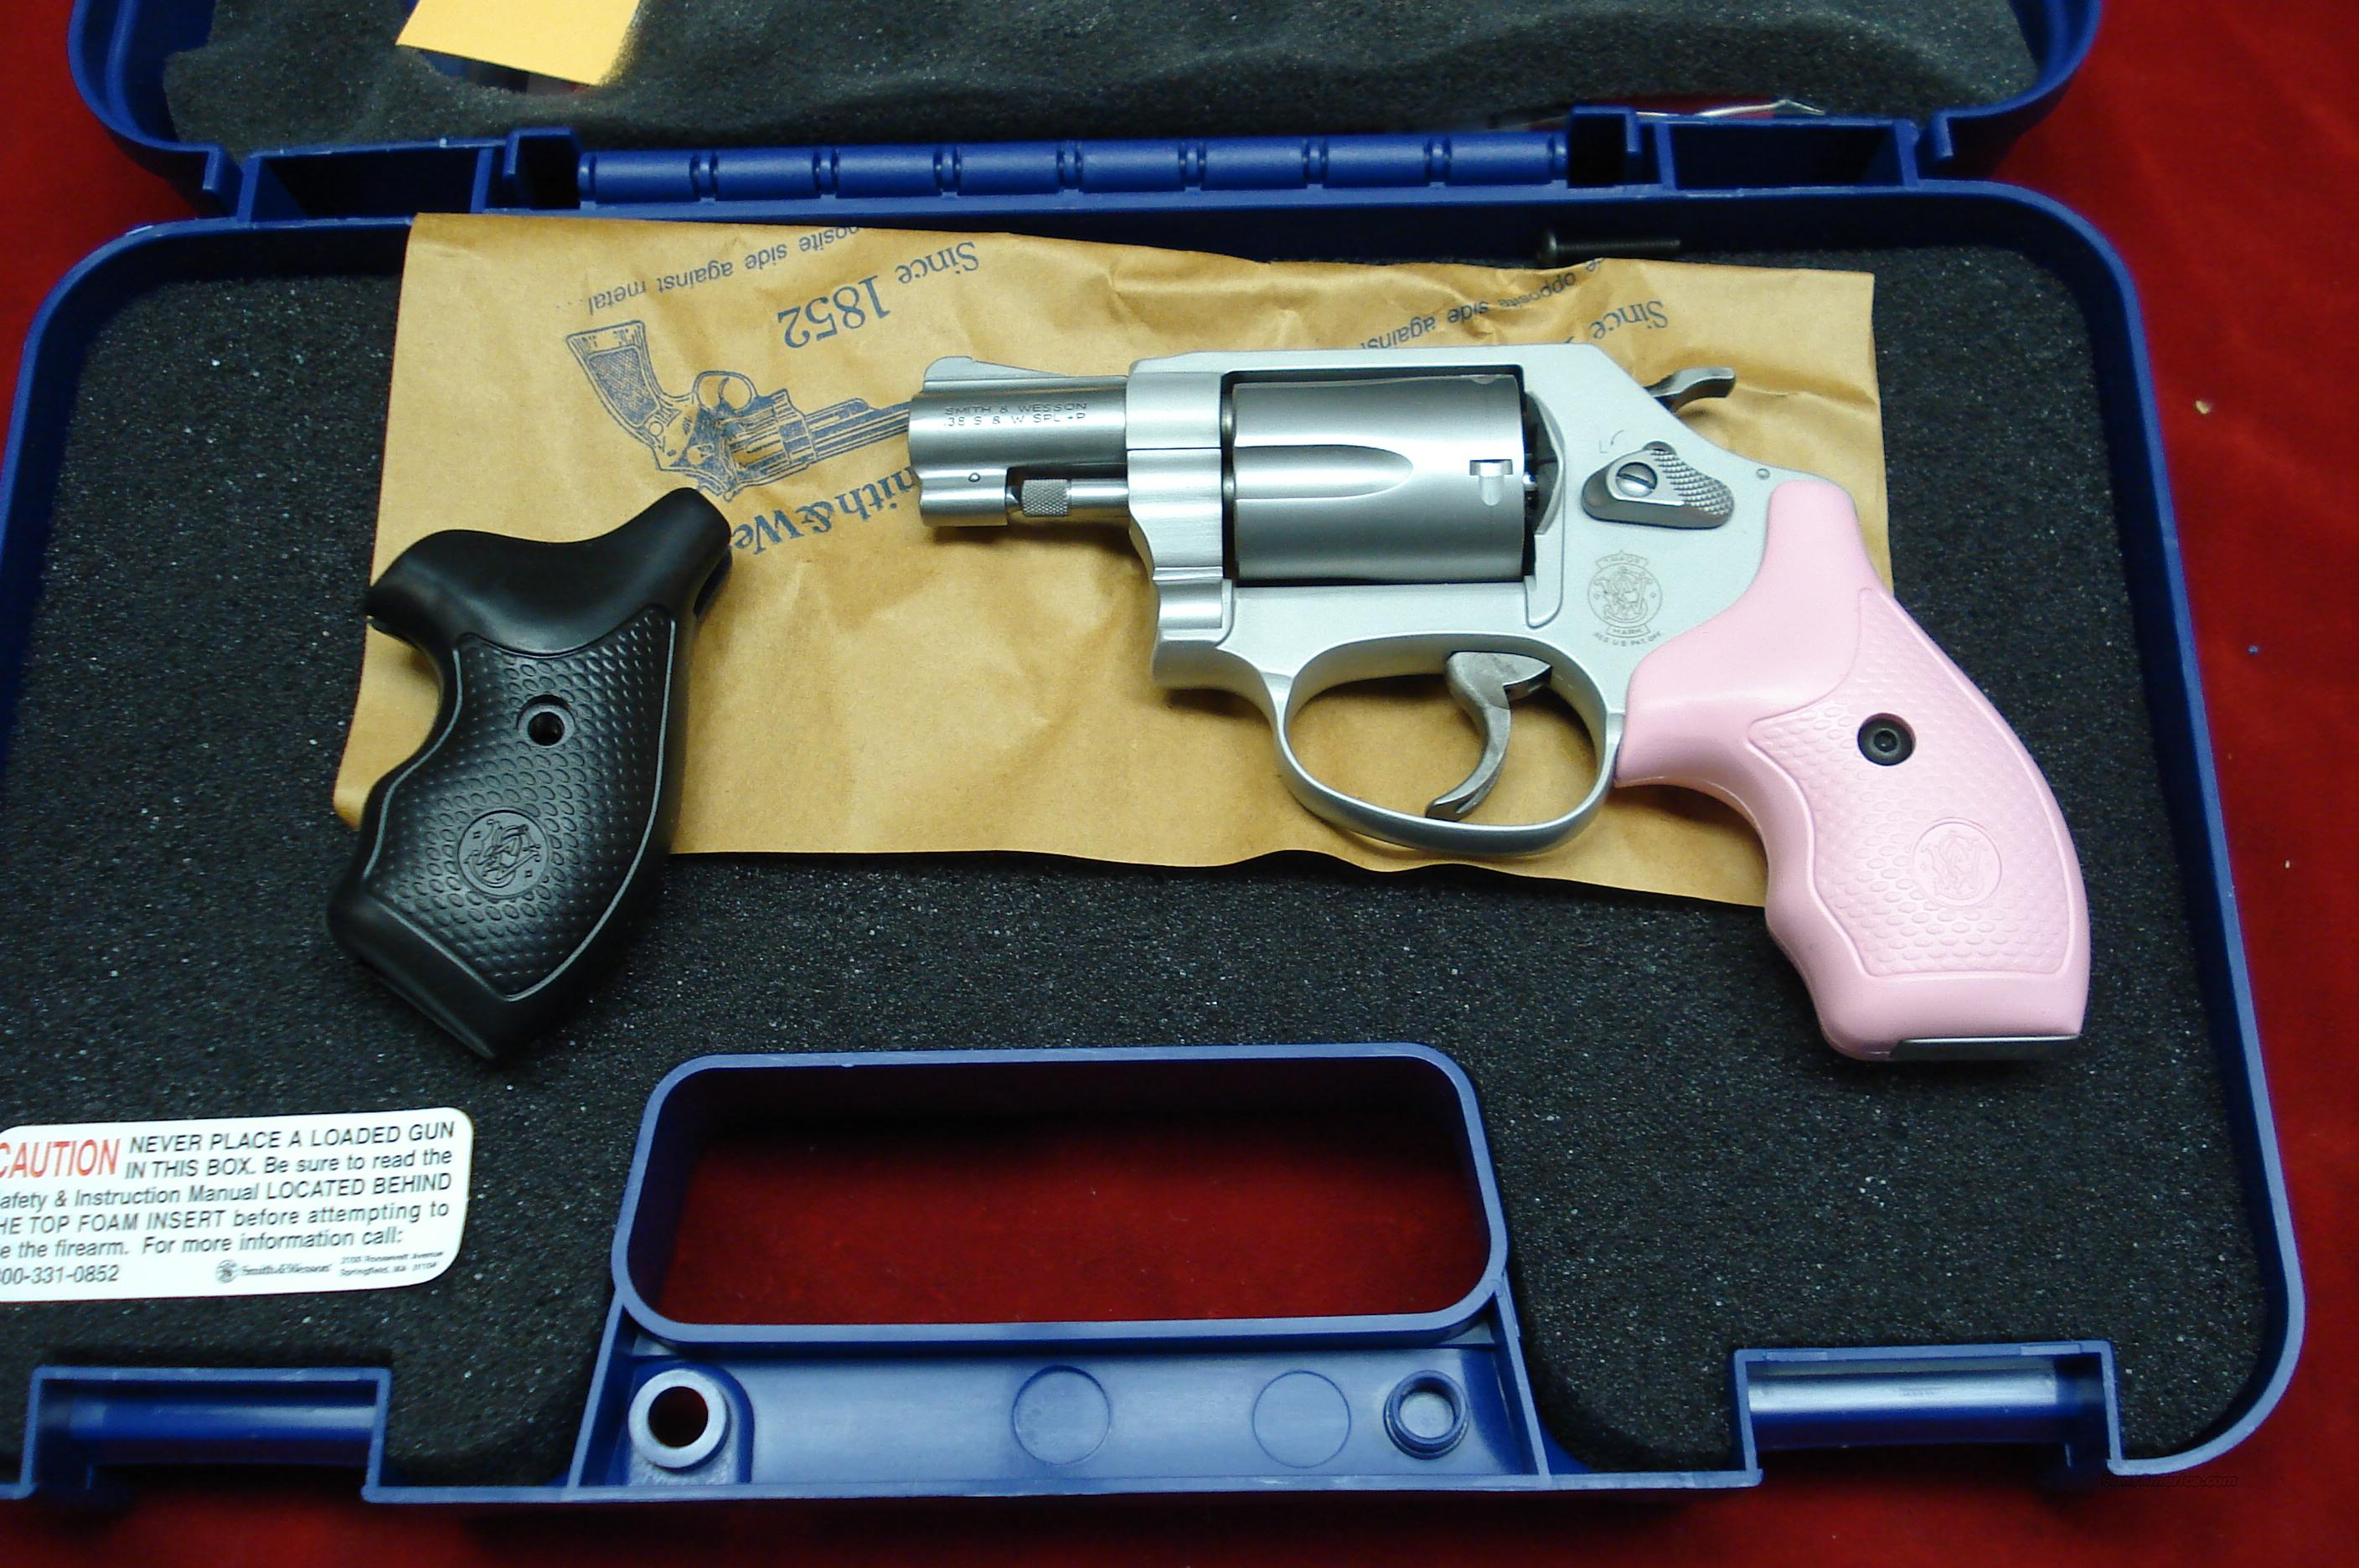 SMITH AND WESSON MODEL 637 AIRWEIGHT W/PINK GRIPS NEW   Guns > Pistols > Smith & Wesson Revolvers > Pocket Pistols